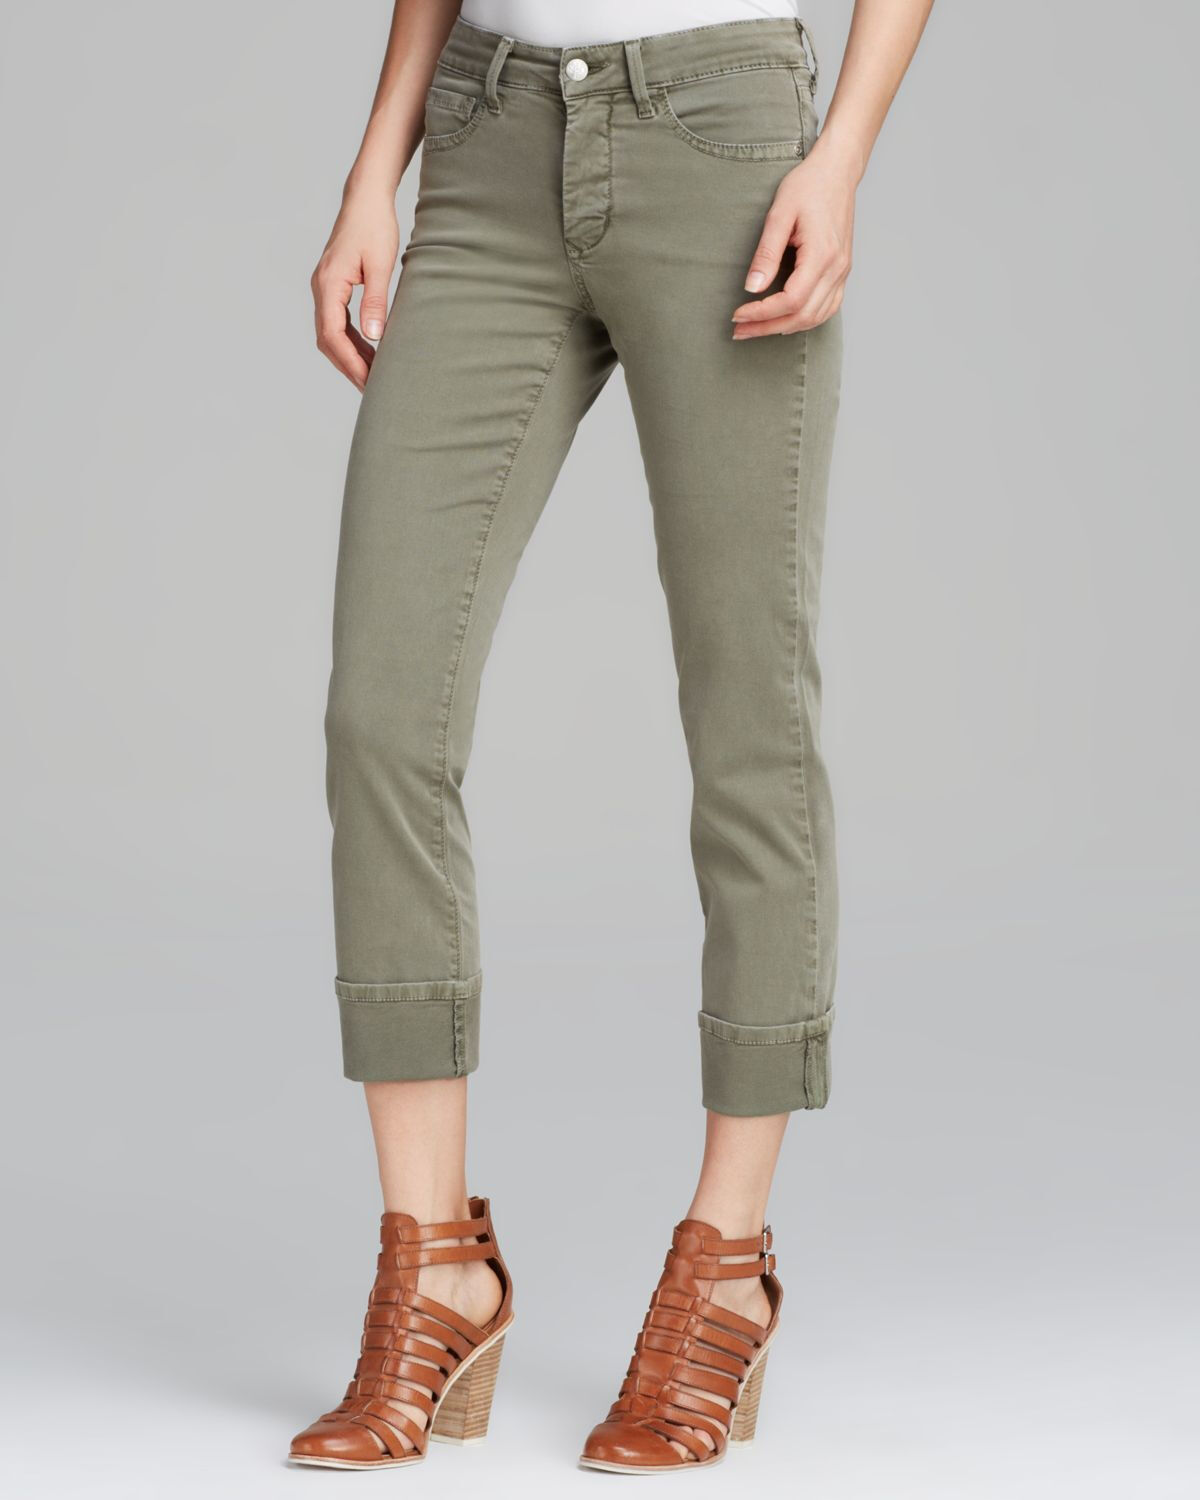 NWT NYDJ Not Your Daughter's Jeans Bobbie Boyfriend Fennel Cropped Pants Jeans 4